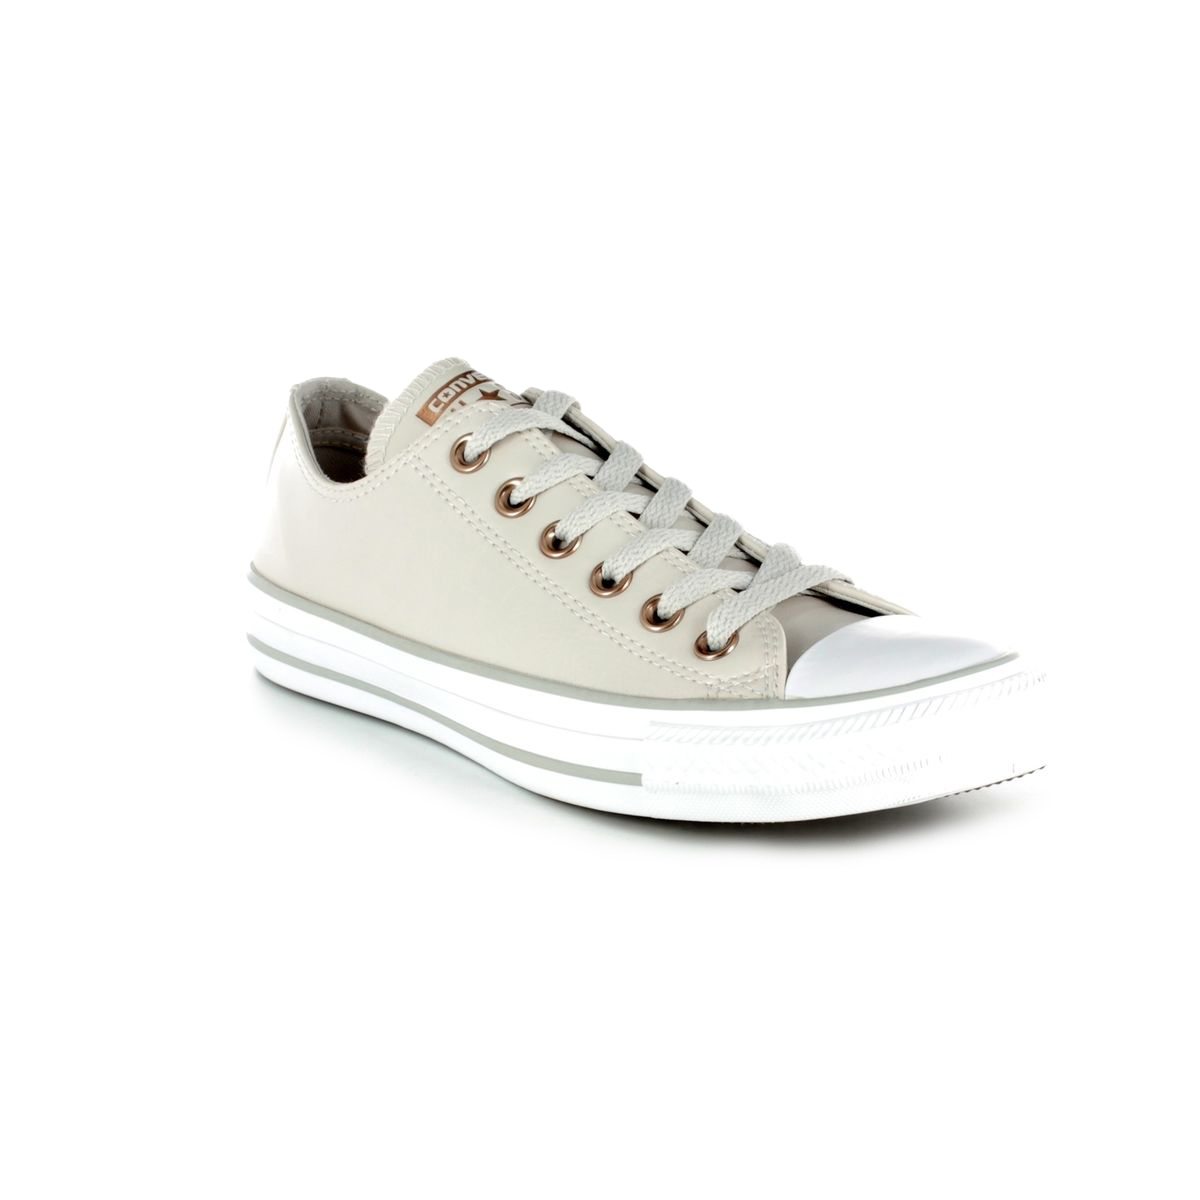 5ae699b1836a3a Converse Allstar Ox 559944C Pale Putty Nude trainers